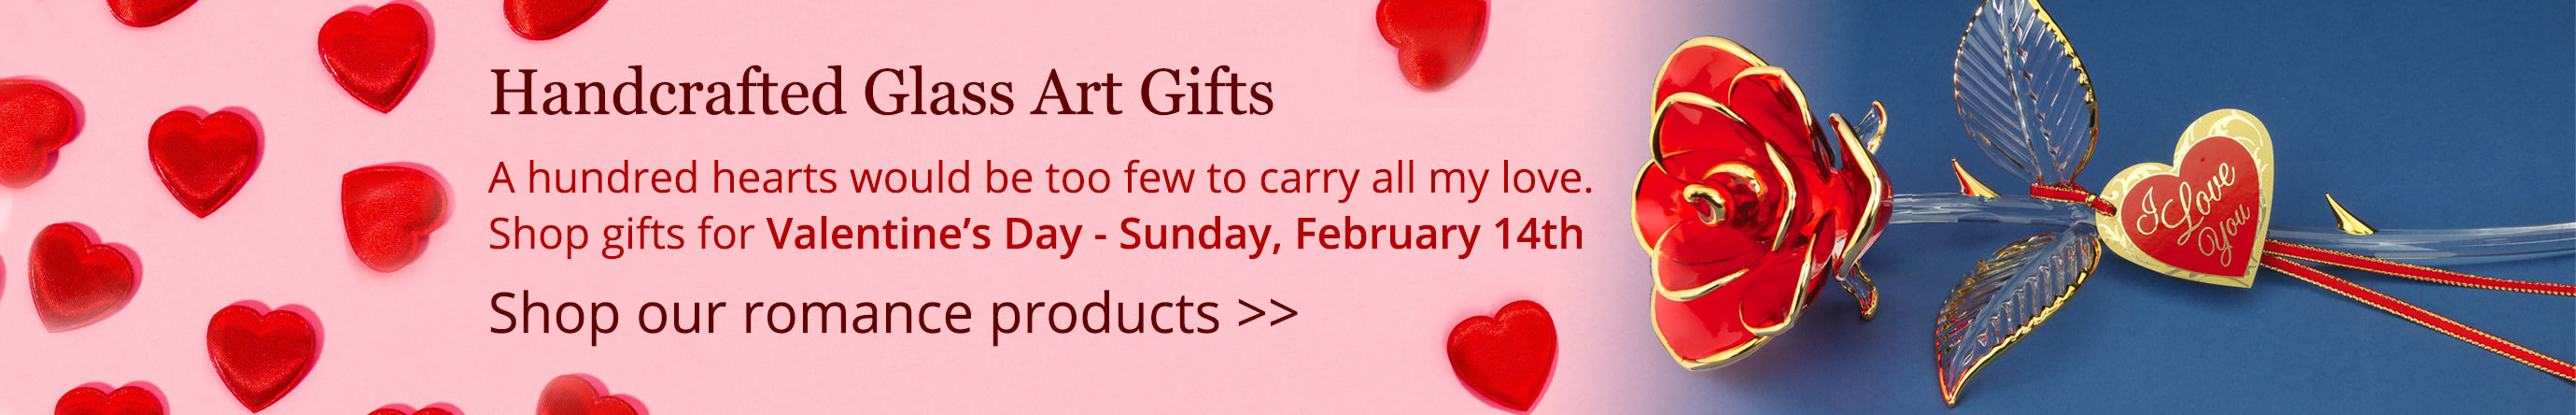 Handcrafted Glass Art Gifts. A hundred hearts would be too few to carry all my love. Shop gifts for Valentine's Day - February 14th. Shop our romance products